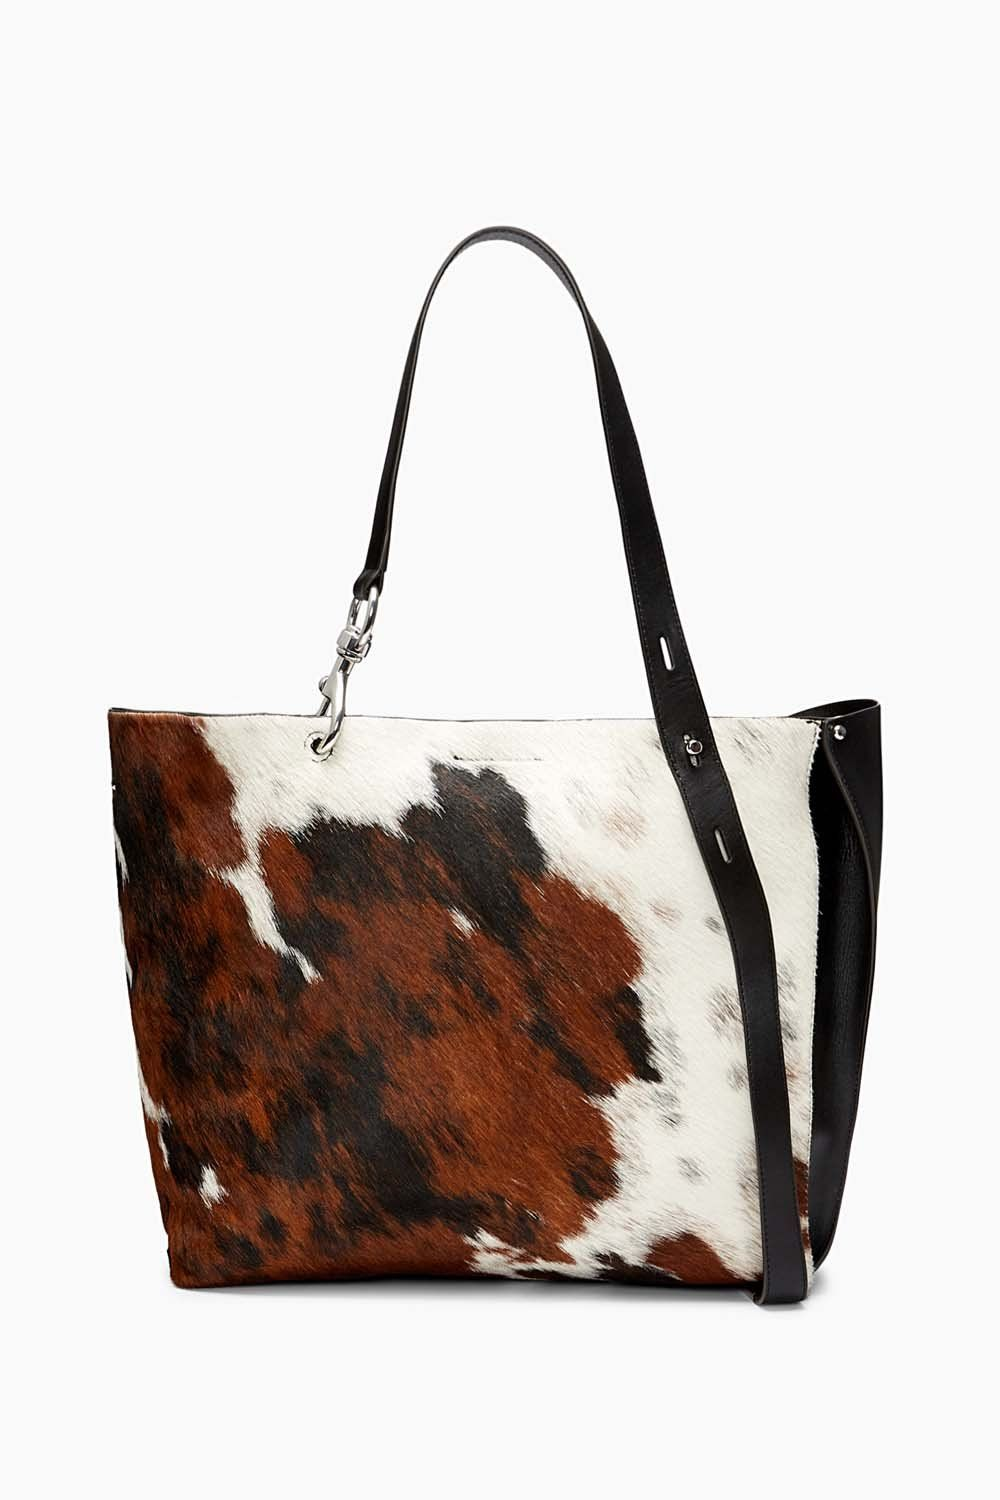 Details about  /Chocolate Brown Leather Women/'s Tote Bag Day Bag More colors